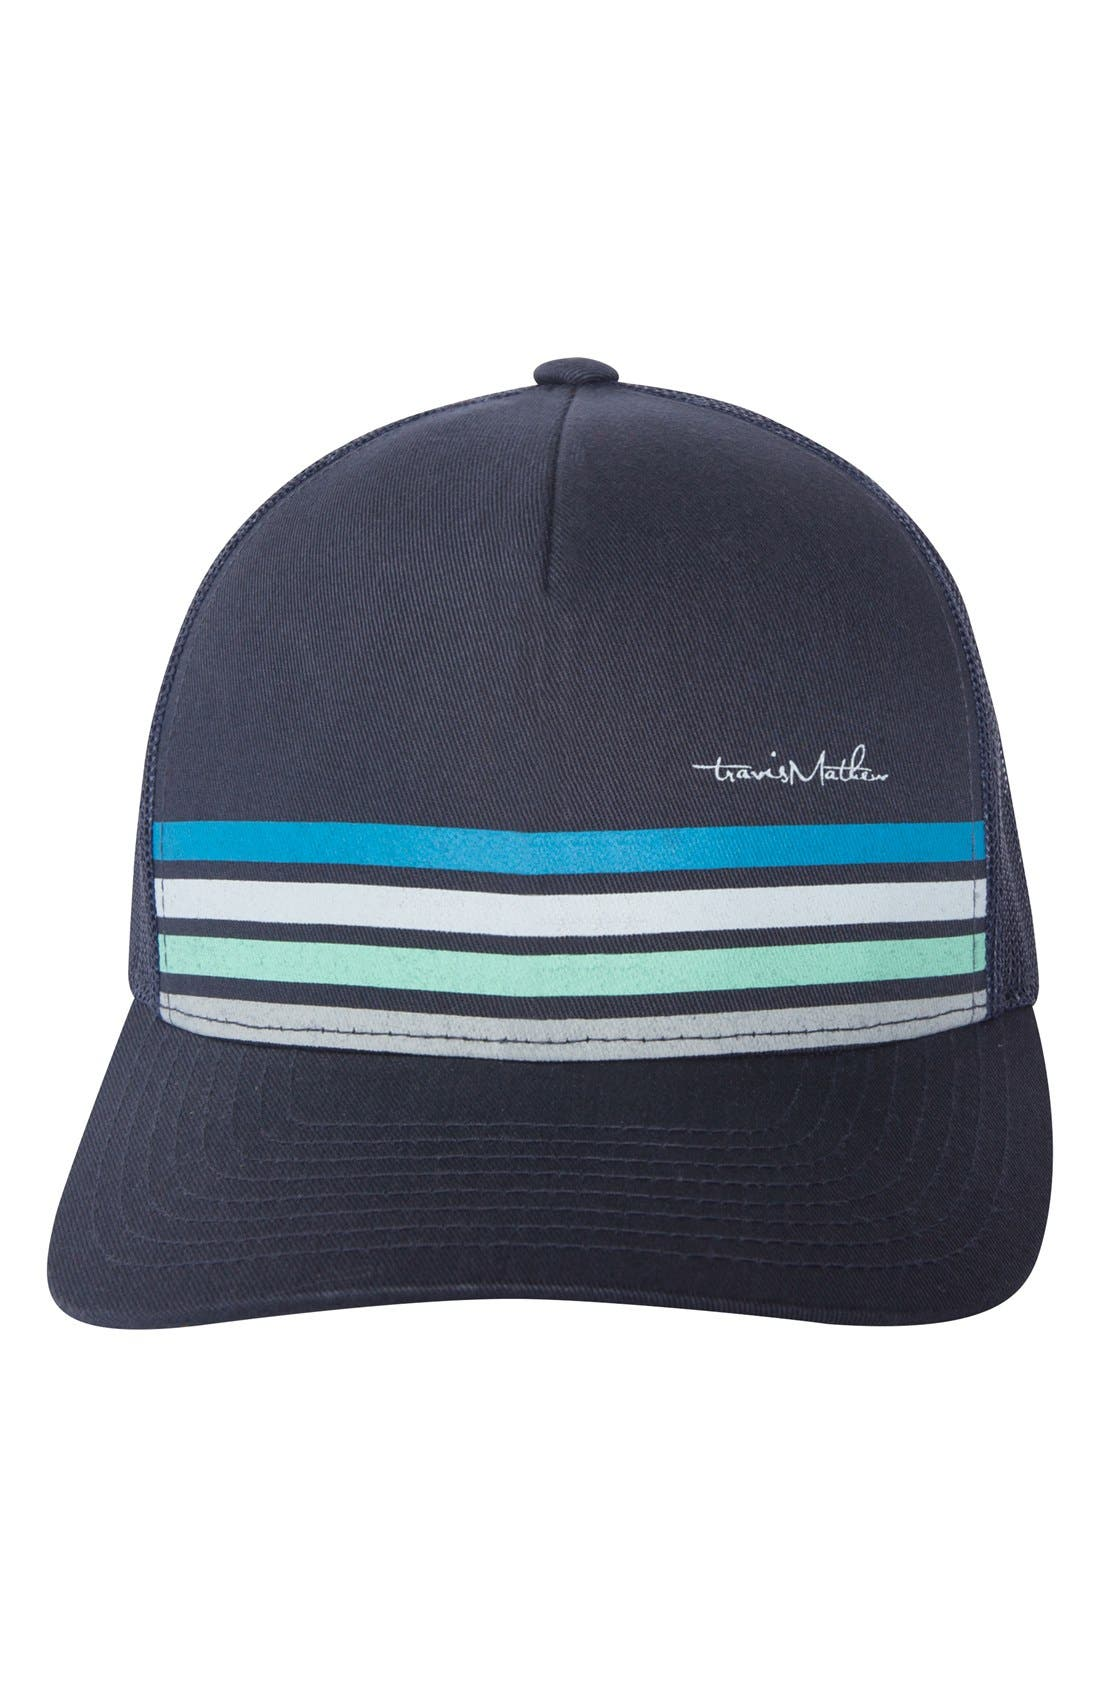 'Hoover' Hat,                         Main,                         color, Navy